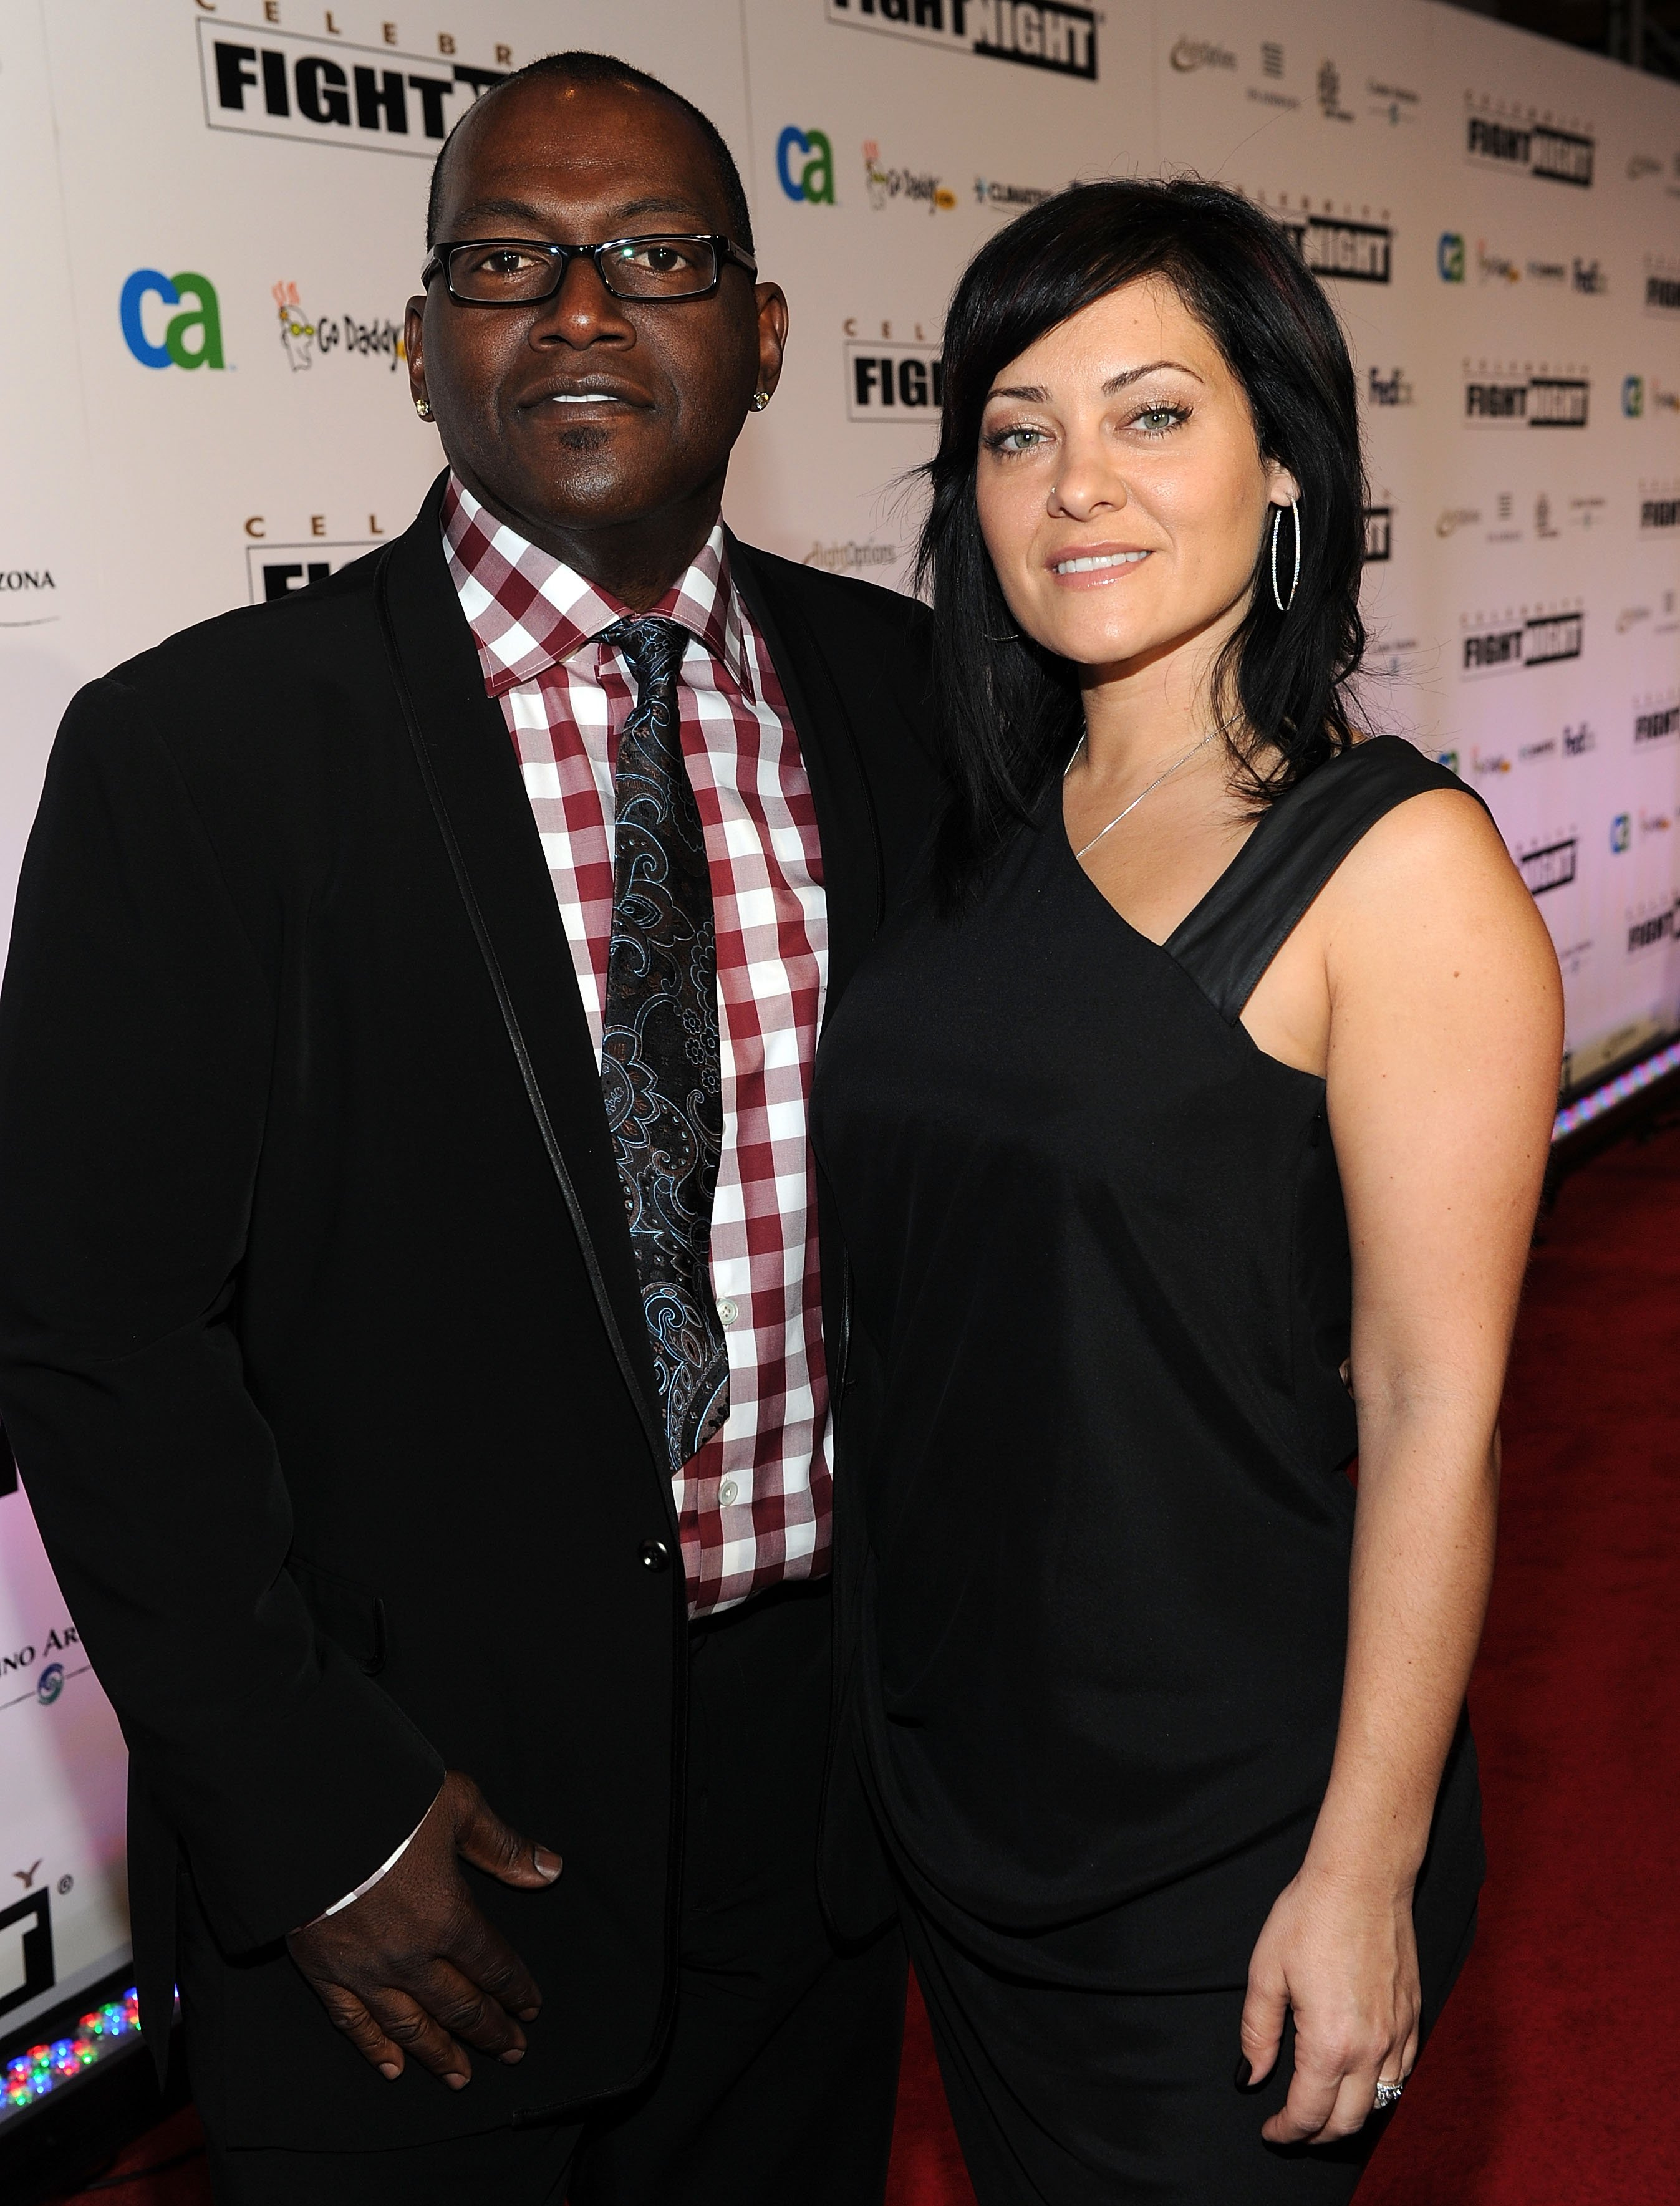 Randy Jackson and his ex-wife Erika Riker in March 2010, four years before Riker filed for divorce. | Photo: Getty Images